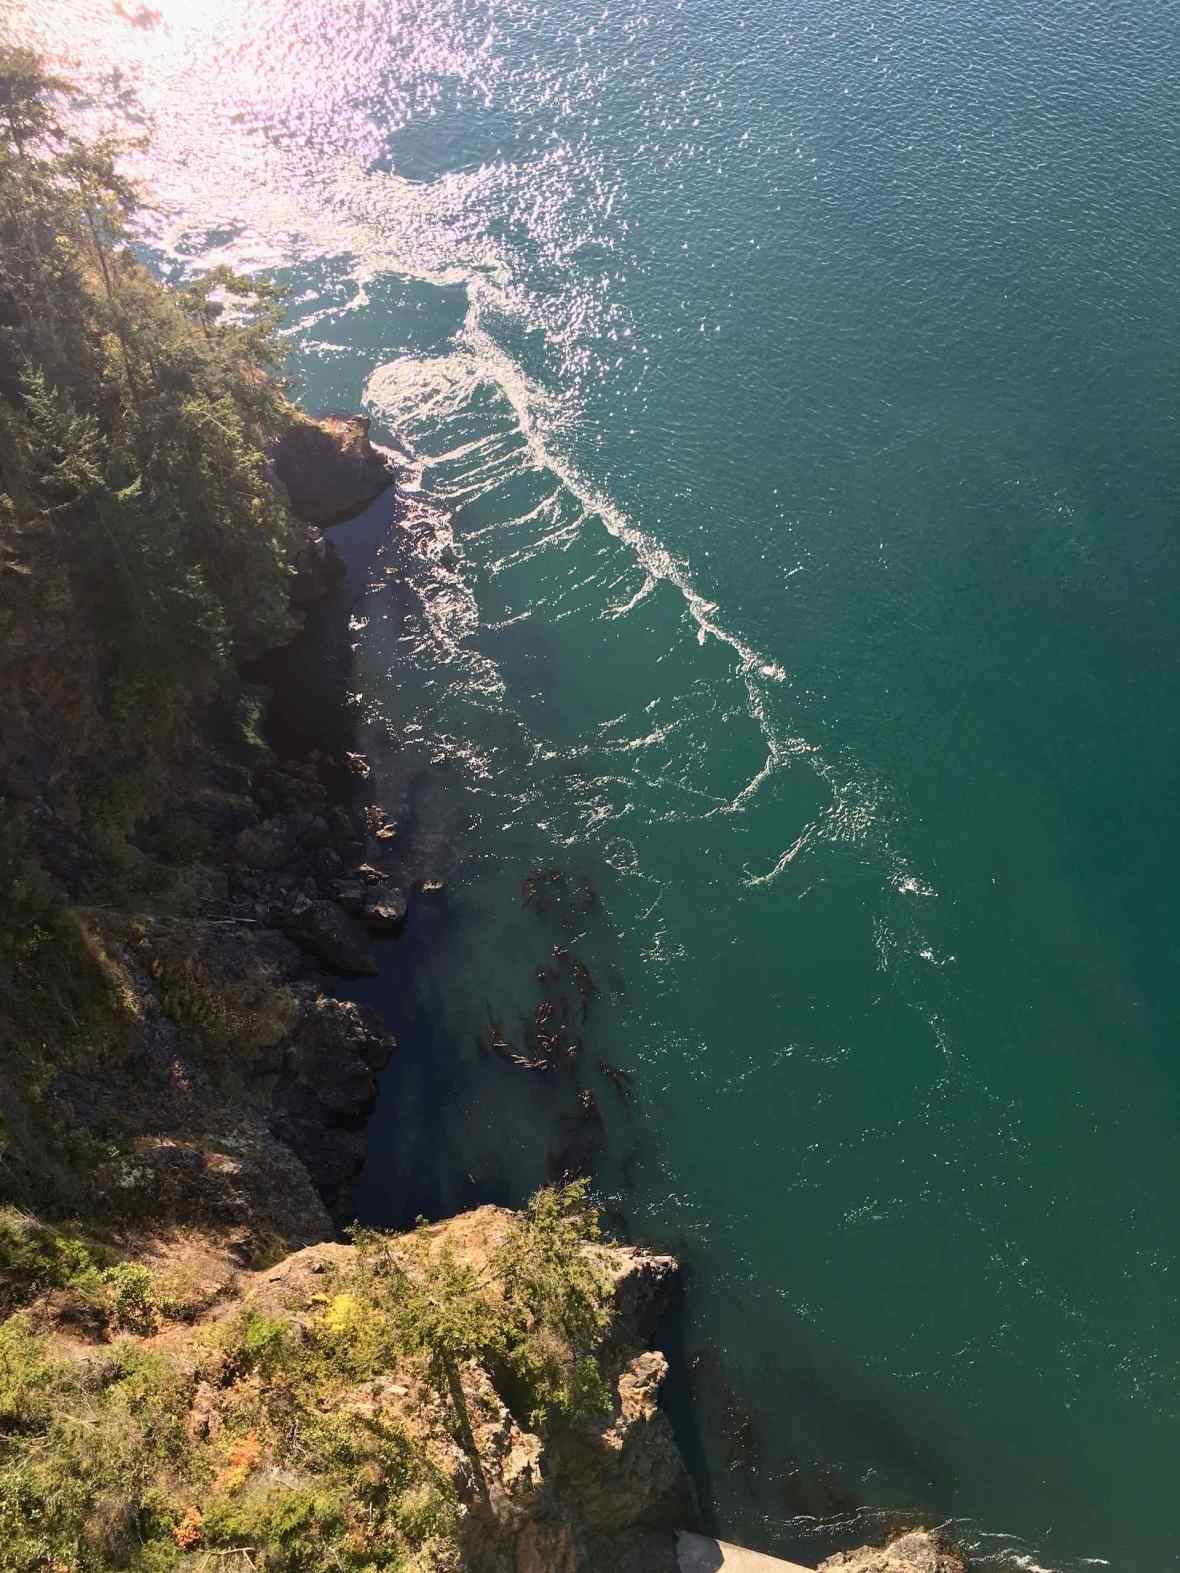 177 feet down to the water - Deception Pass Bridge, State Park Washington